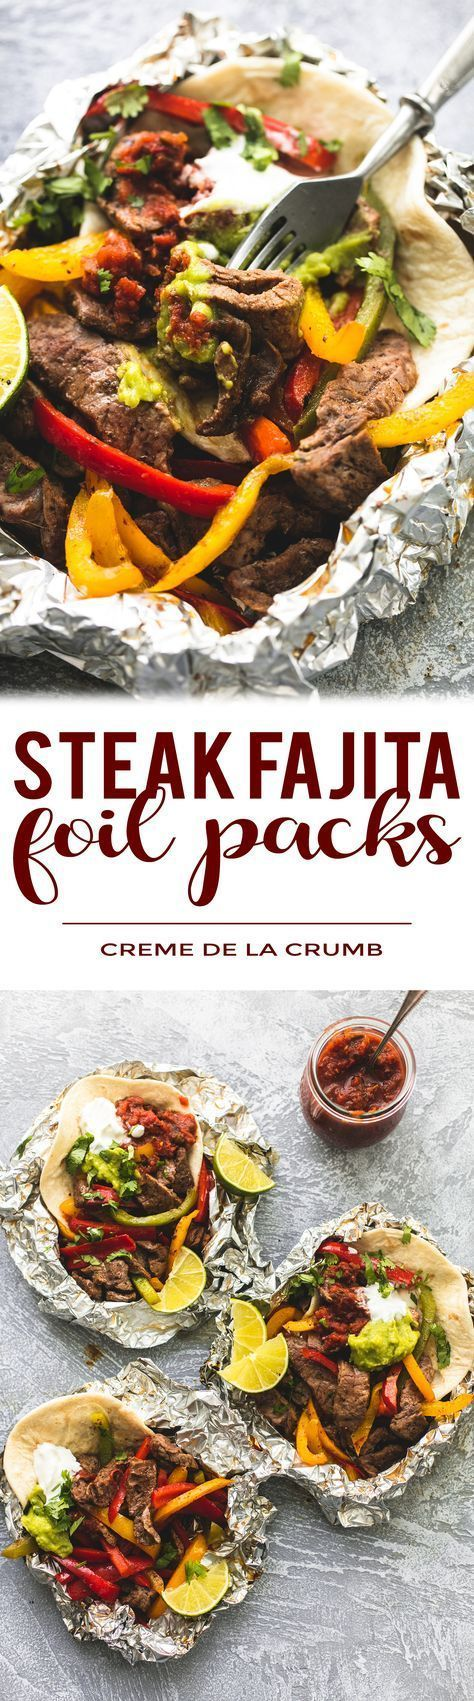 The packets of easy-to-prepare and flavored fajita steak leaves make the best summer …   – Foil Pack Recipes